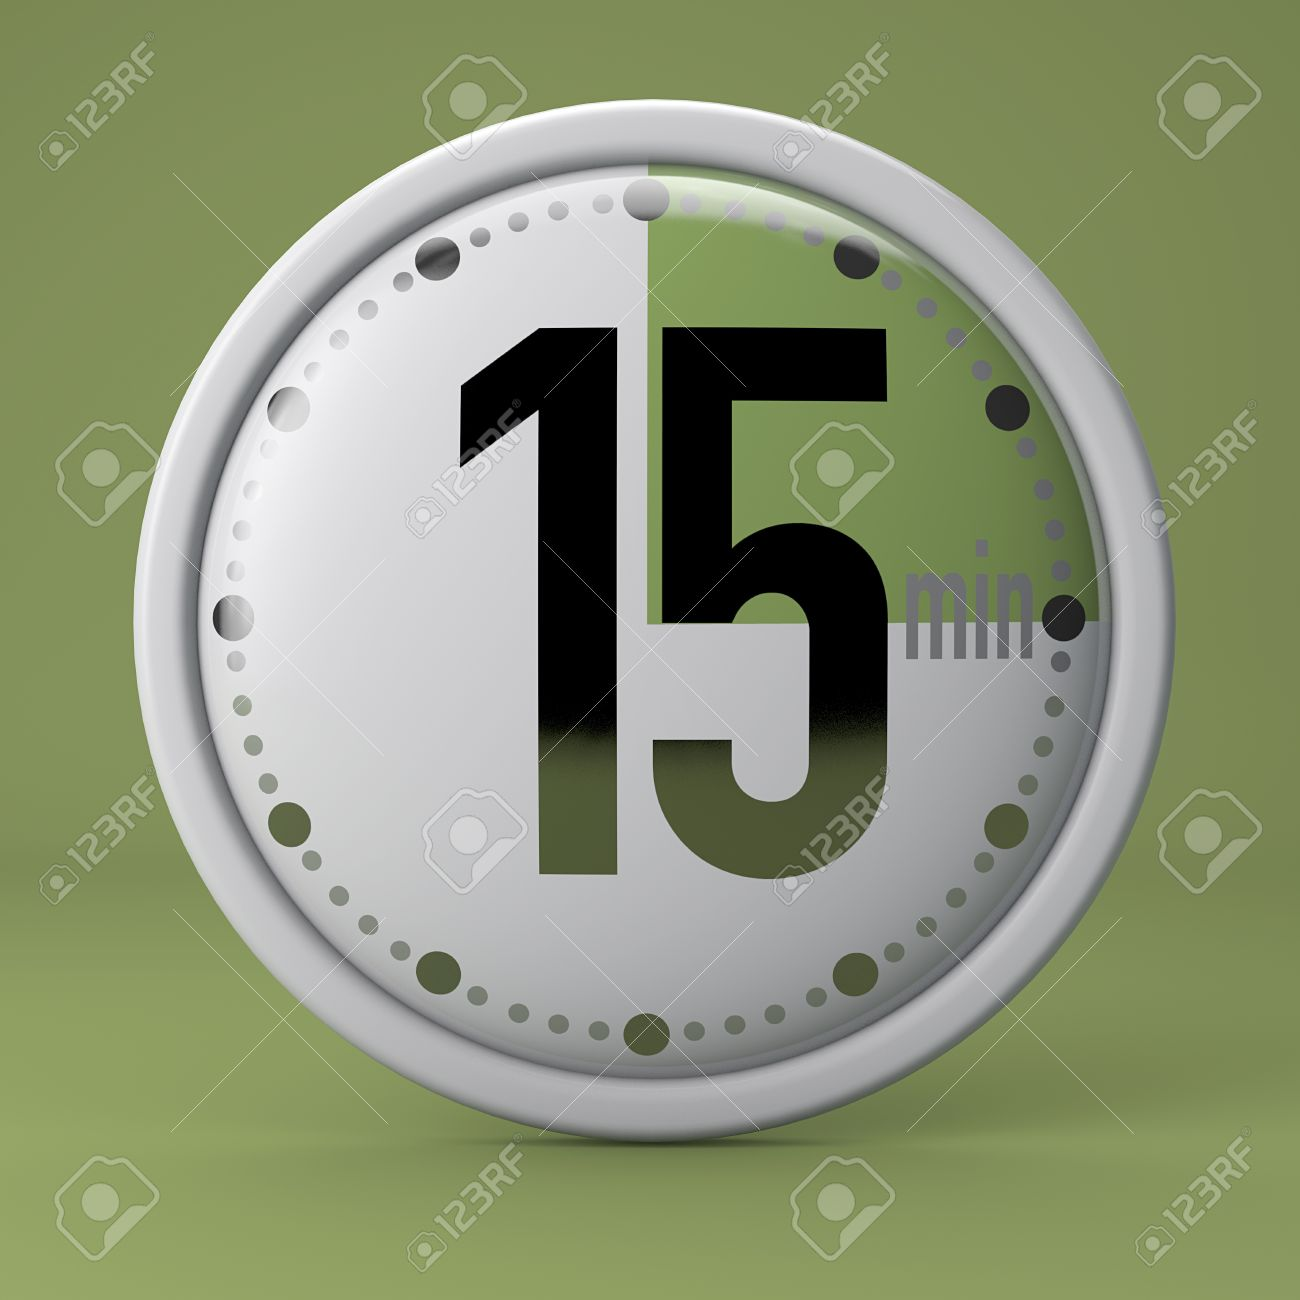 time clock timer stopwatch 15 minutes stock photo picture and